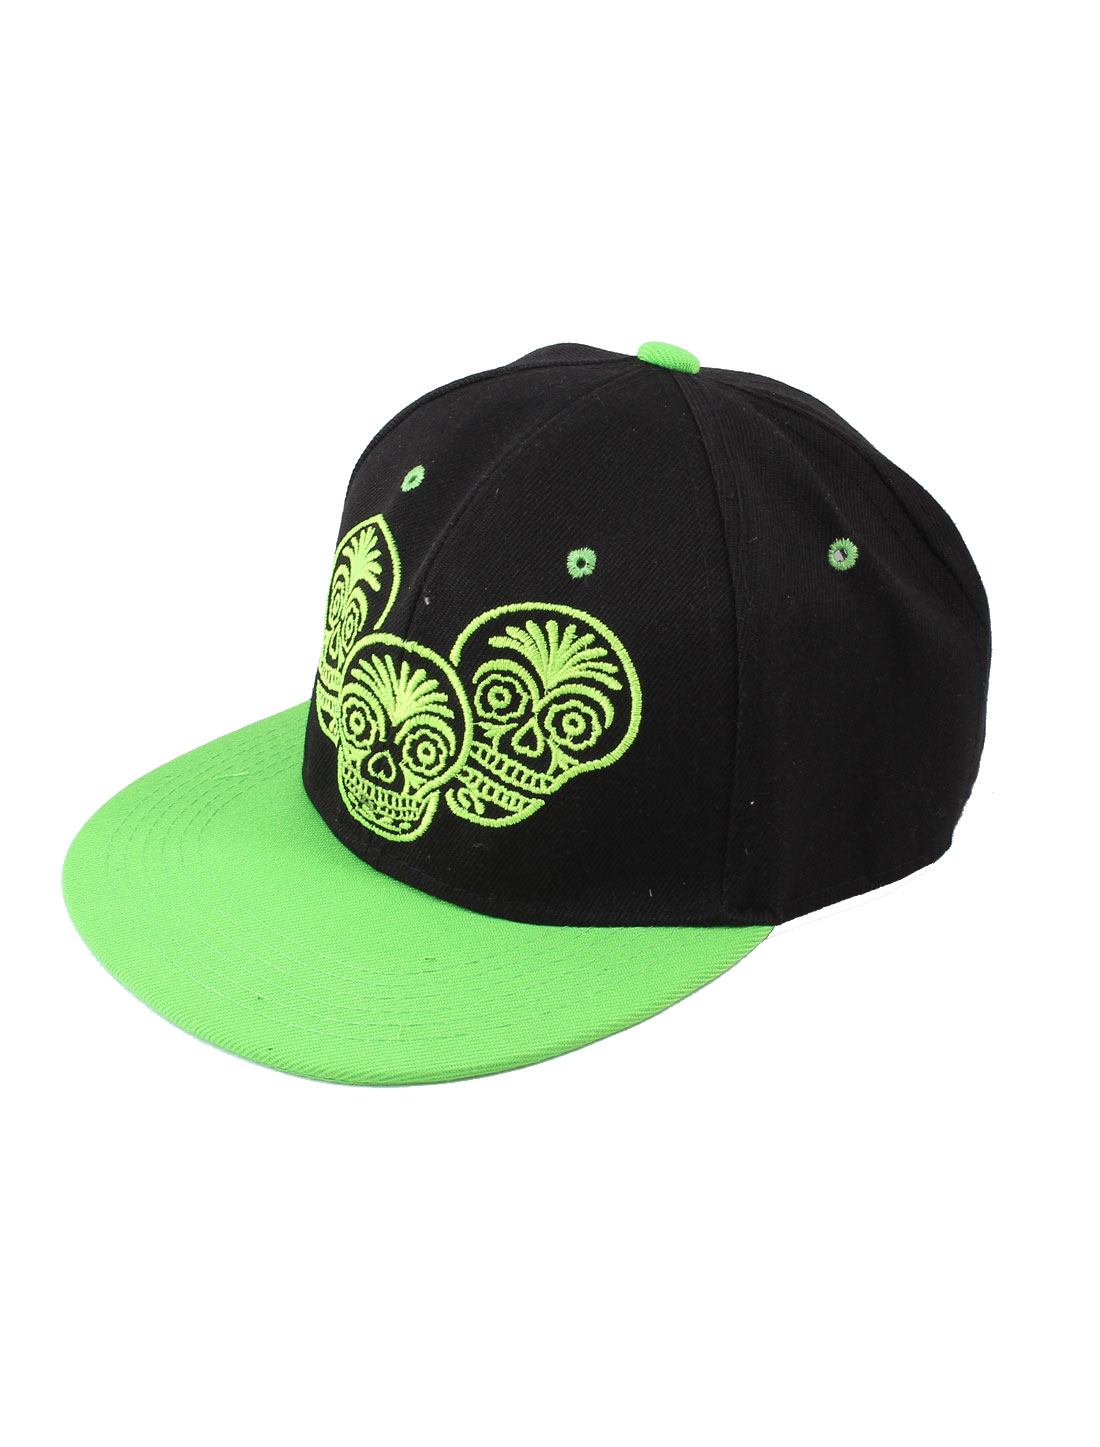 Unisex Green Three Skull Detailed Adjustable Hip-hop Cricket Ball Golf Tennis Baseball Sun Visor Cap